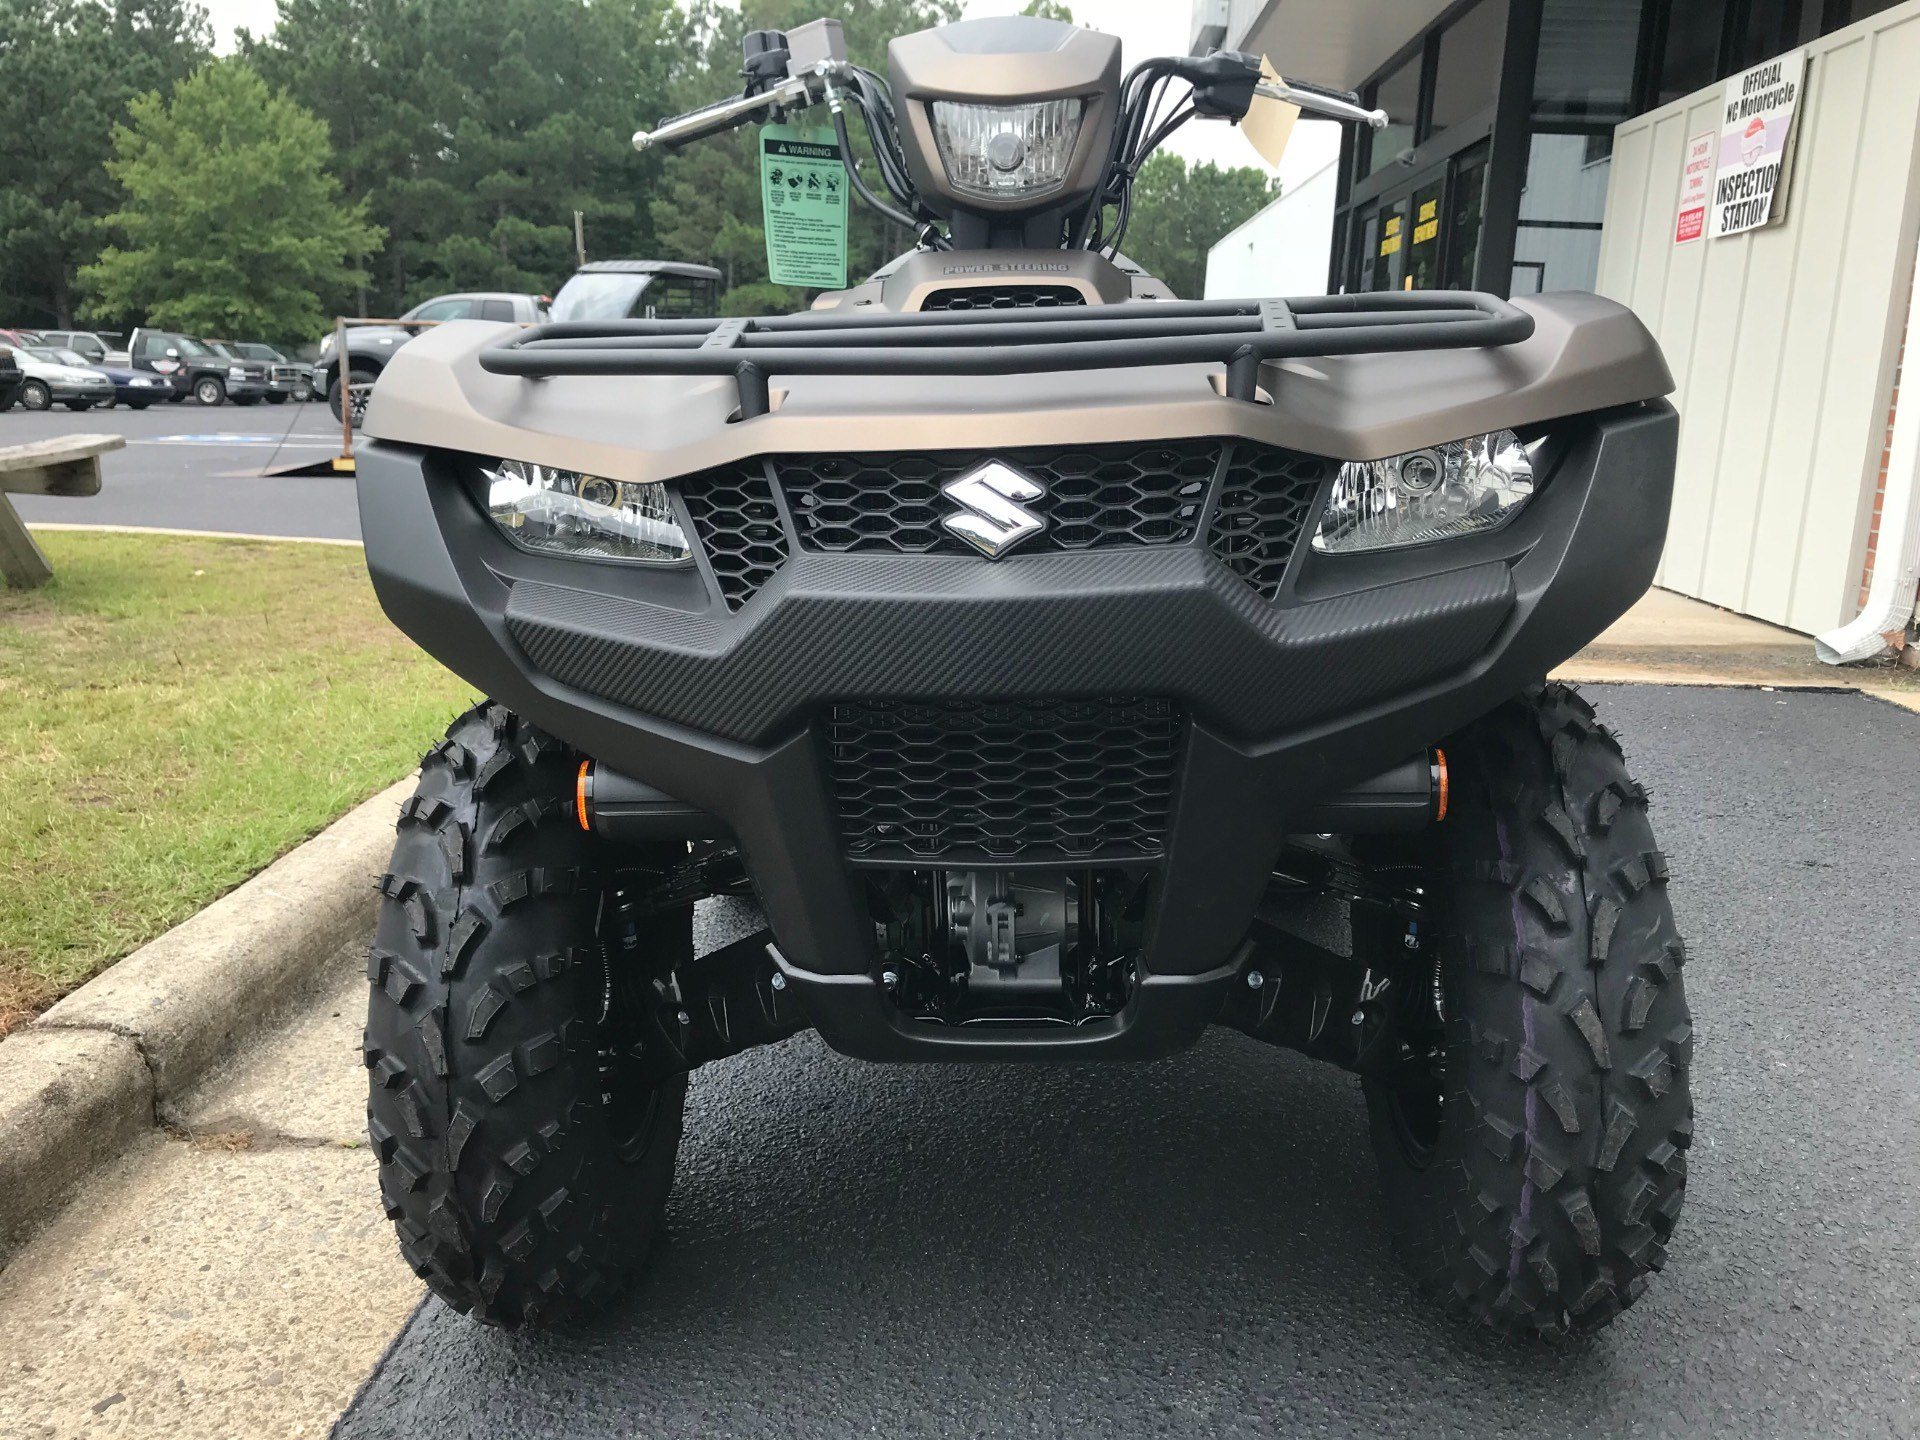 2019 Suzuki KingQuad 500AXi Power Steering SE+ in Greenville, North Carolina - Photo 4